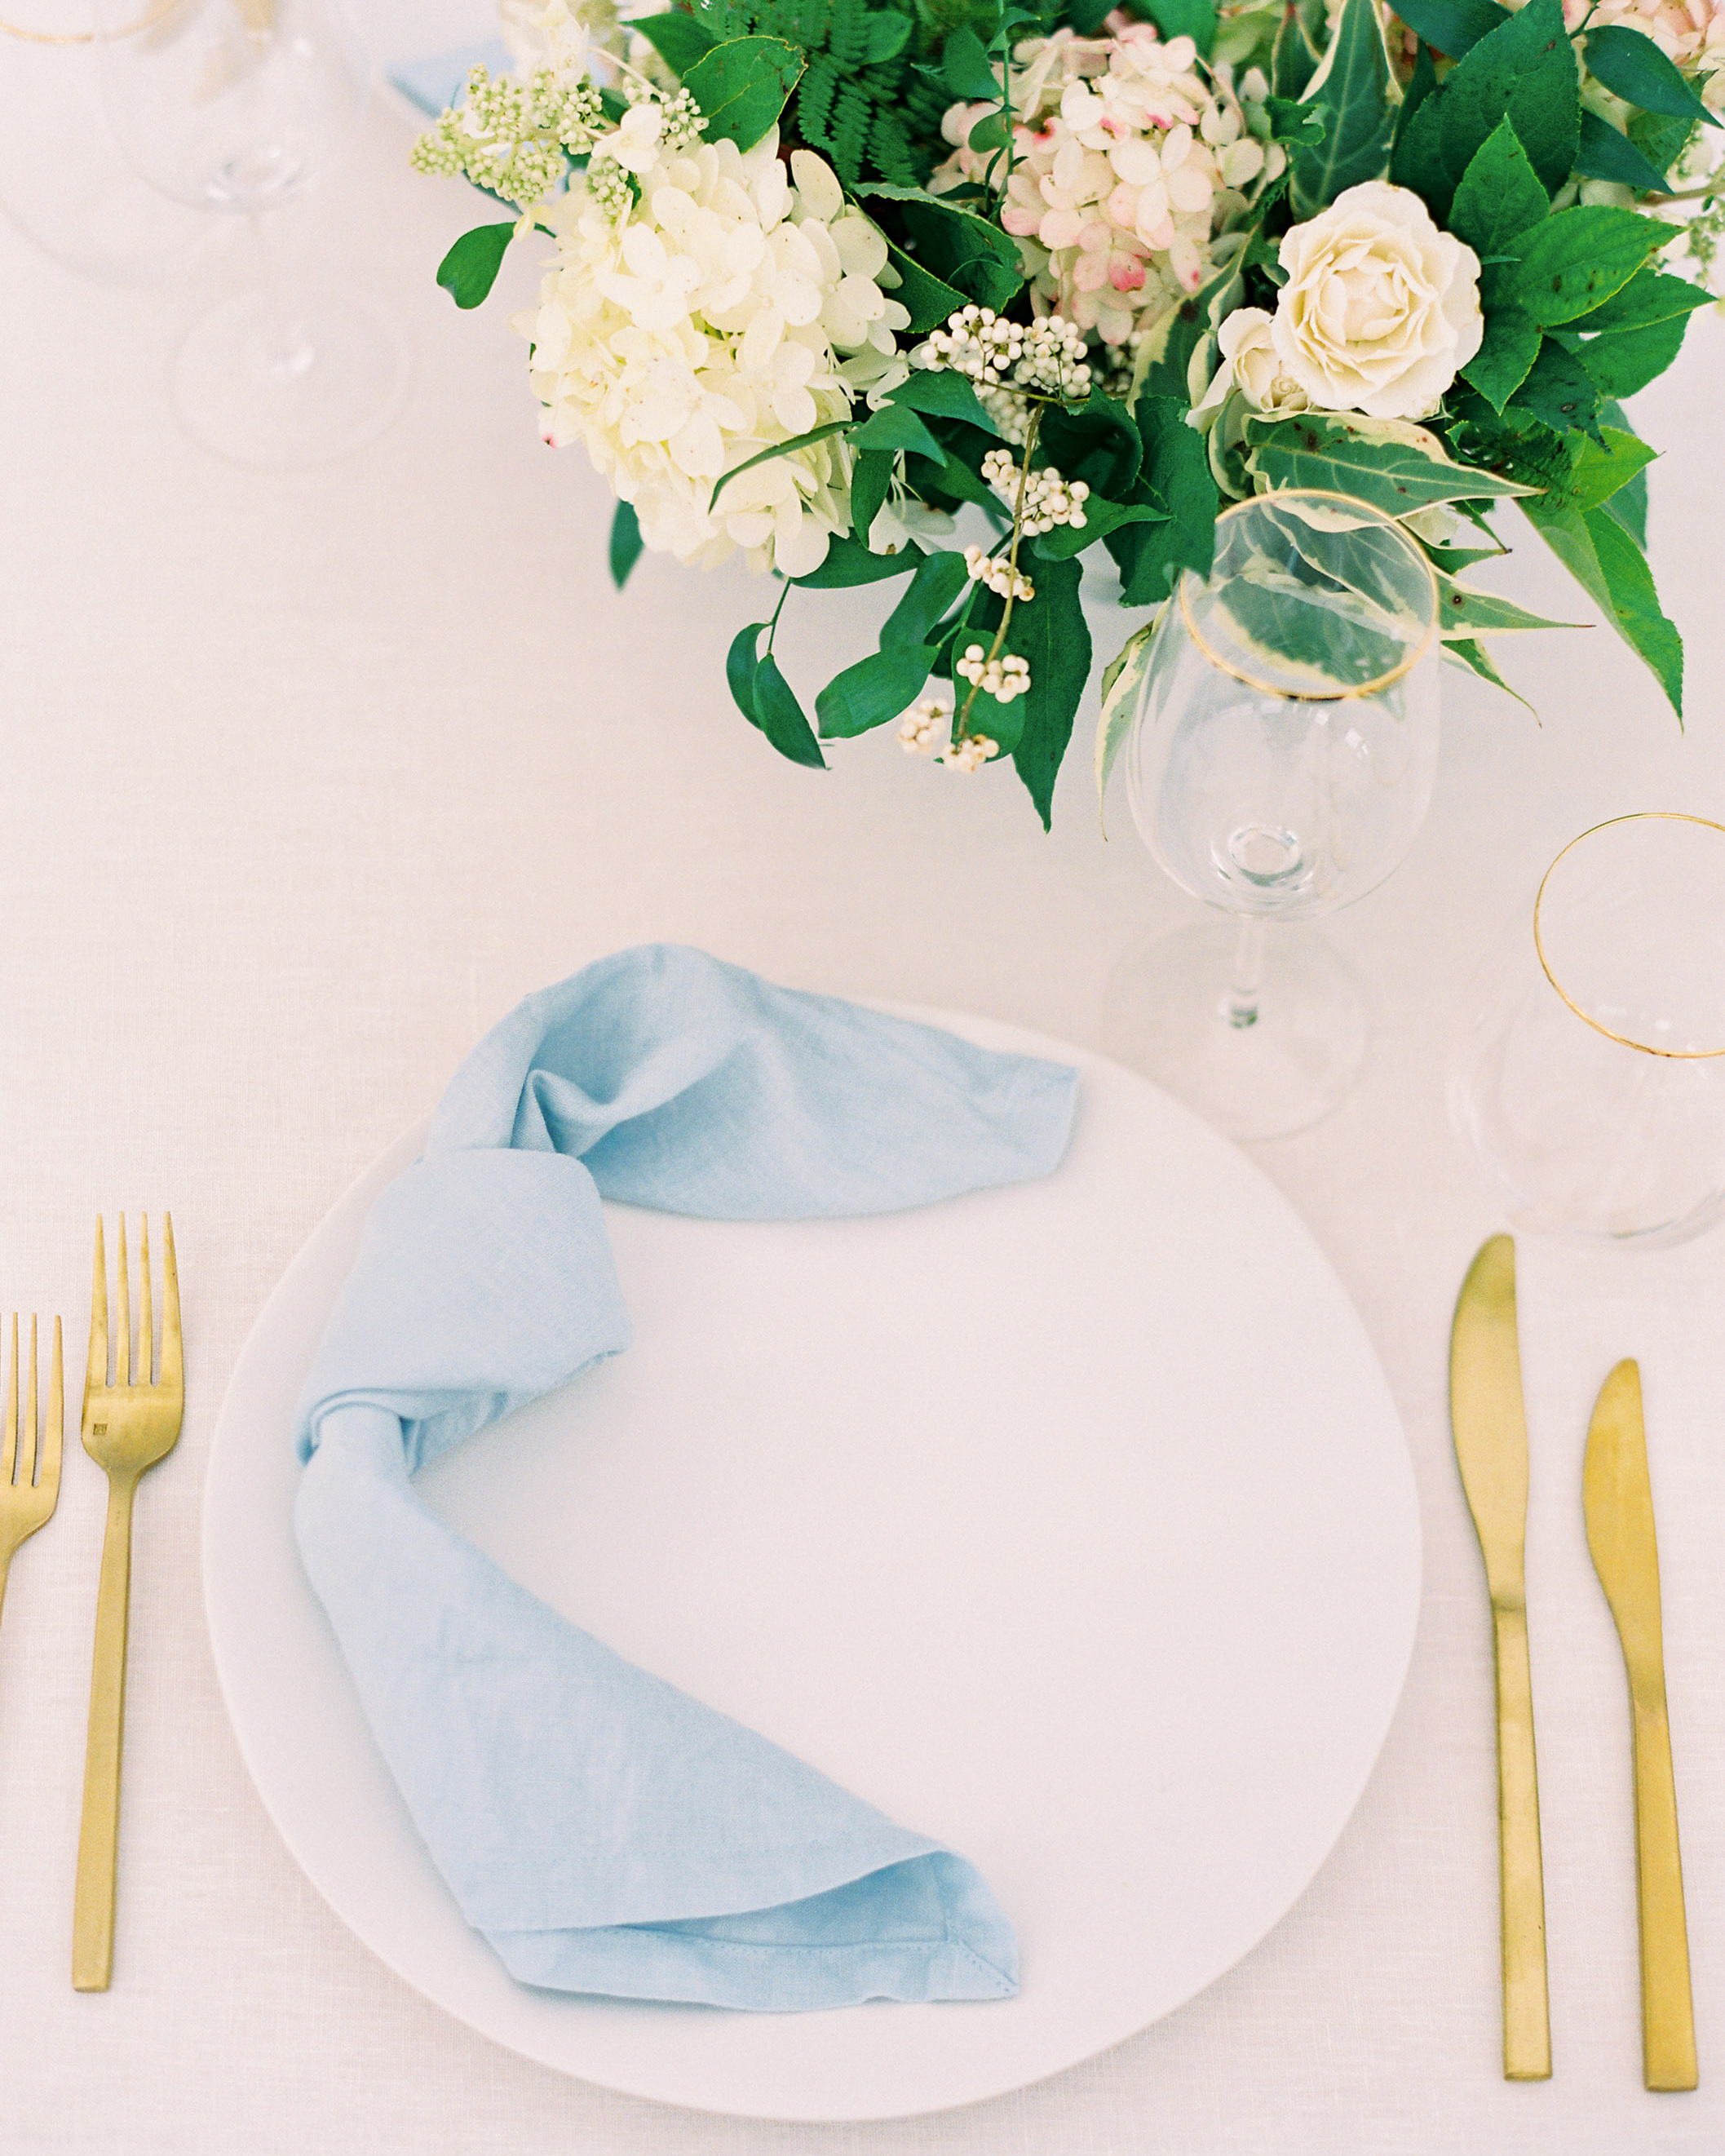 minimalist table setting rose floral arrangement blue napkin